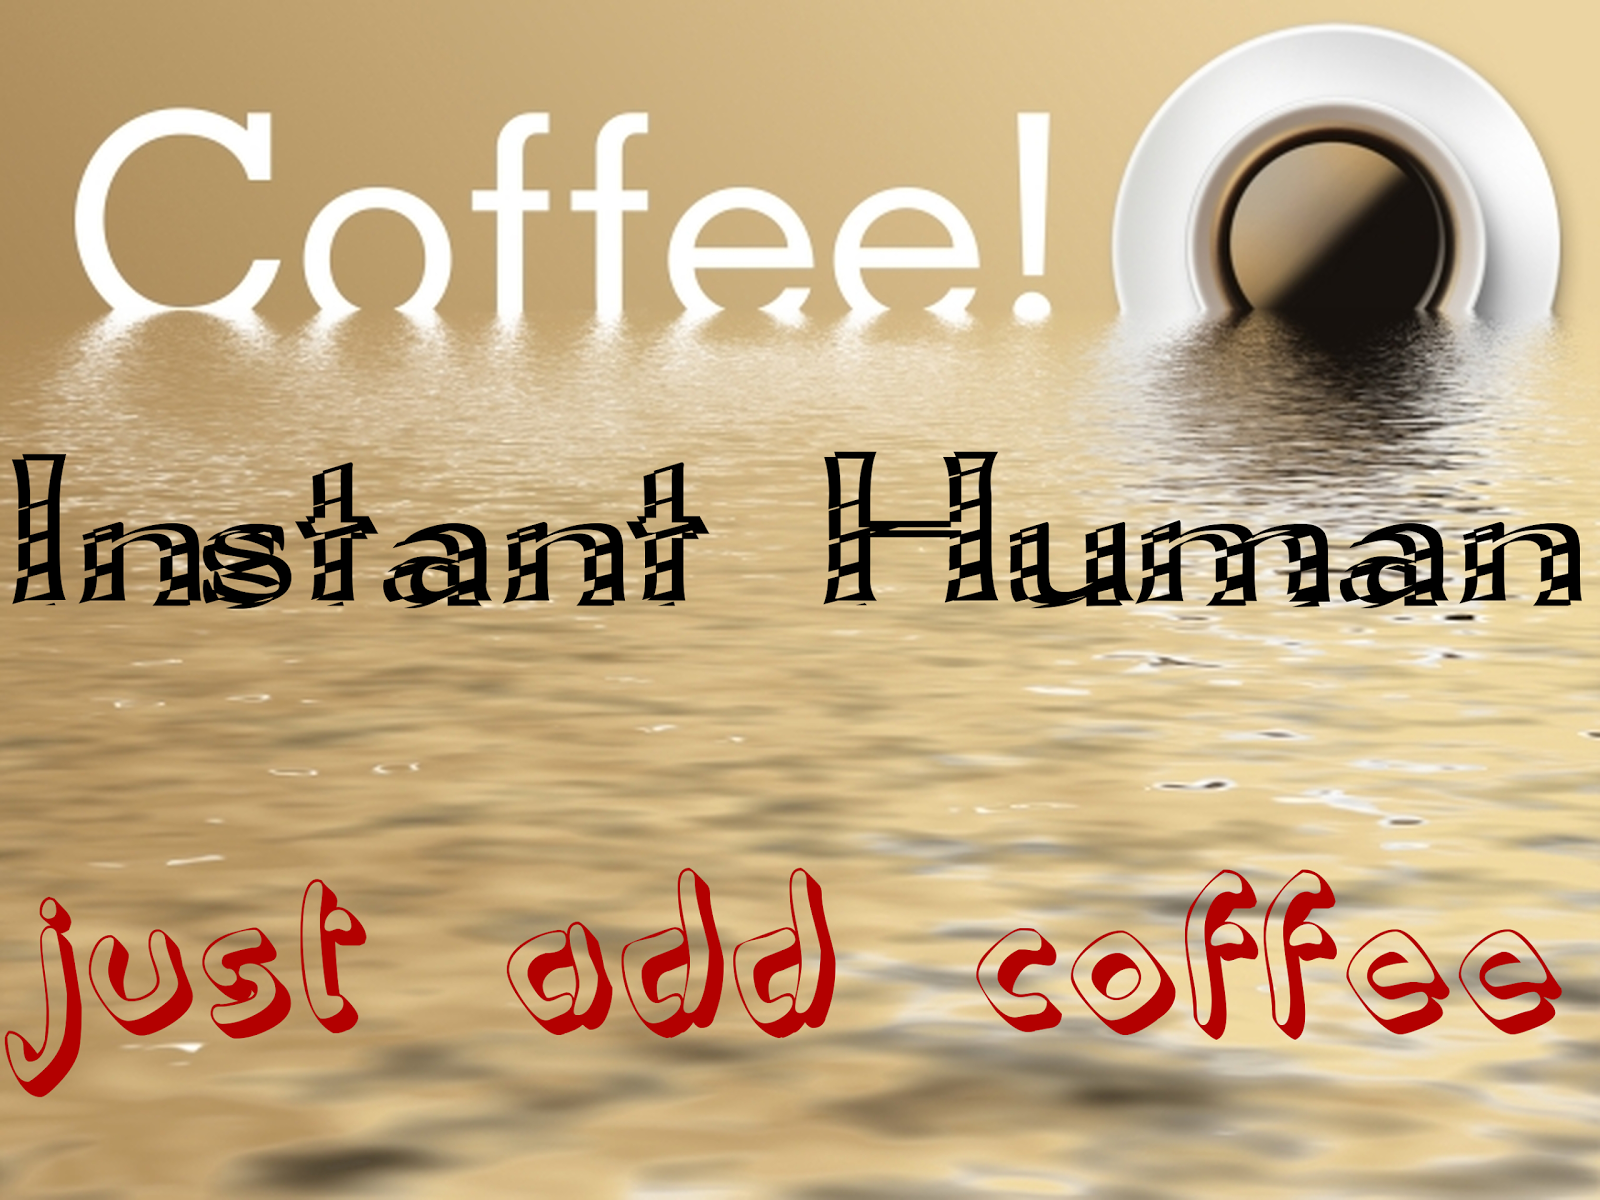 Coffee Quotes And Pictures: Very Funny Coffee Quotes. QuotesGram